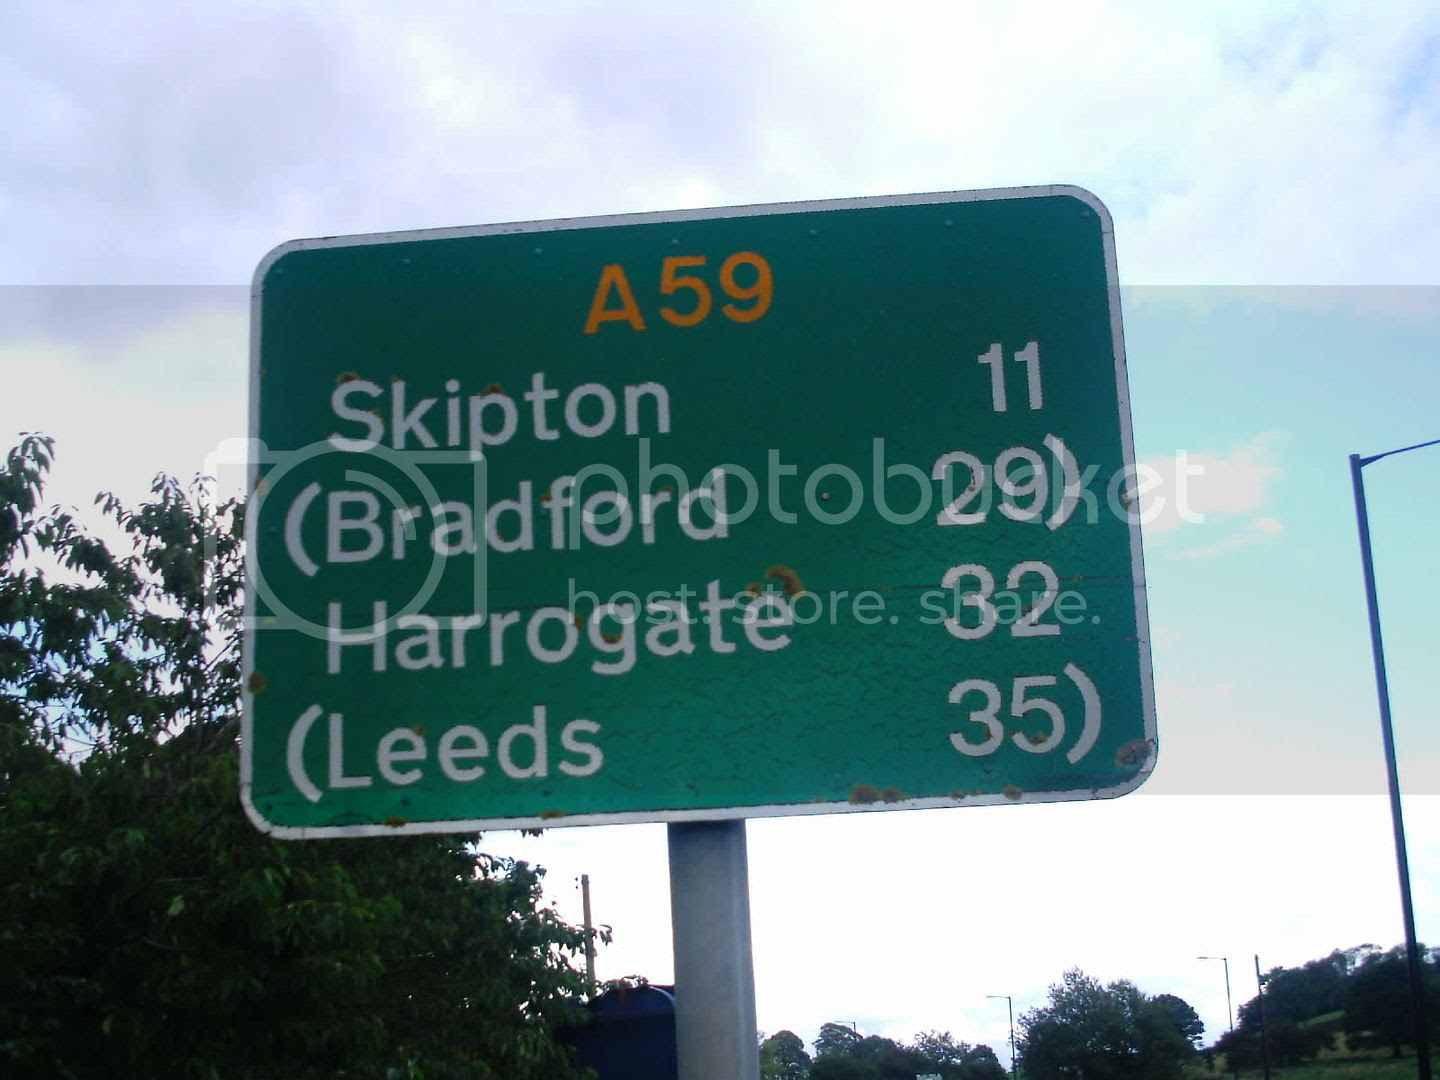 taken when I Got back to Gisburn, not sure how far it is from Gisburn to site…